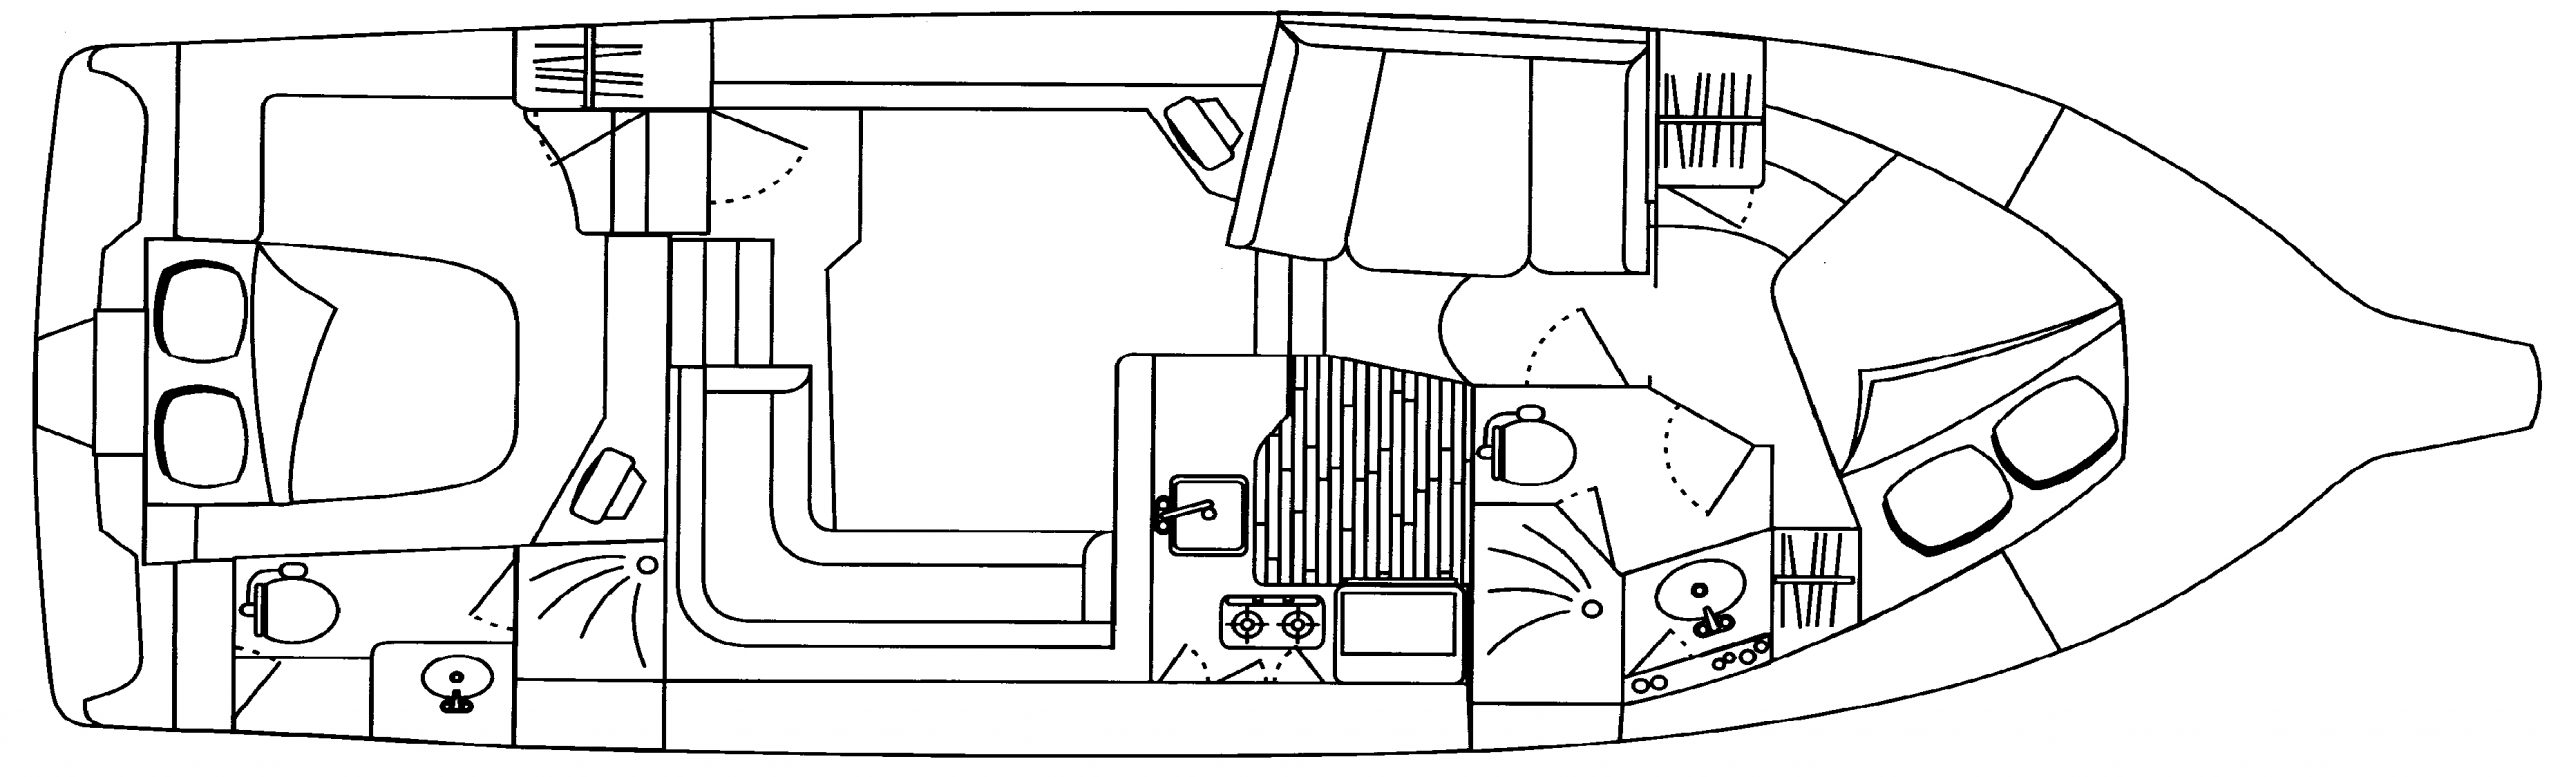 402-422 Motor Yacht Floor Plan 2